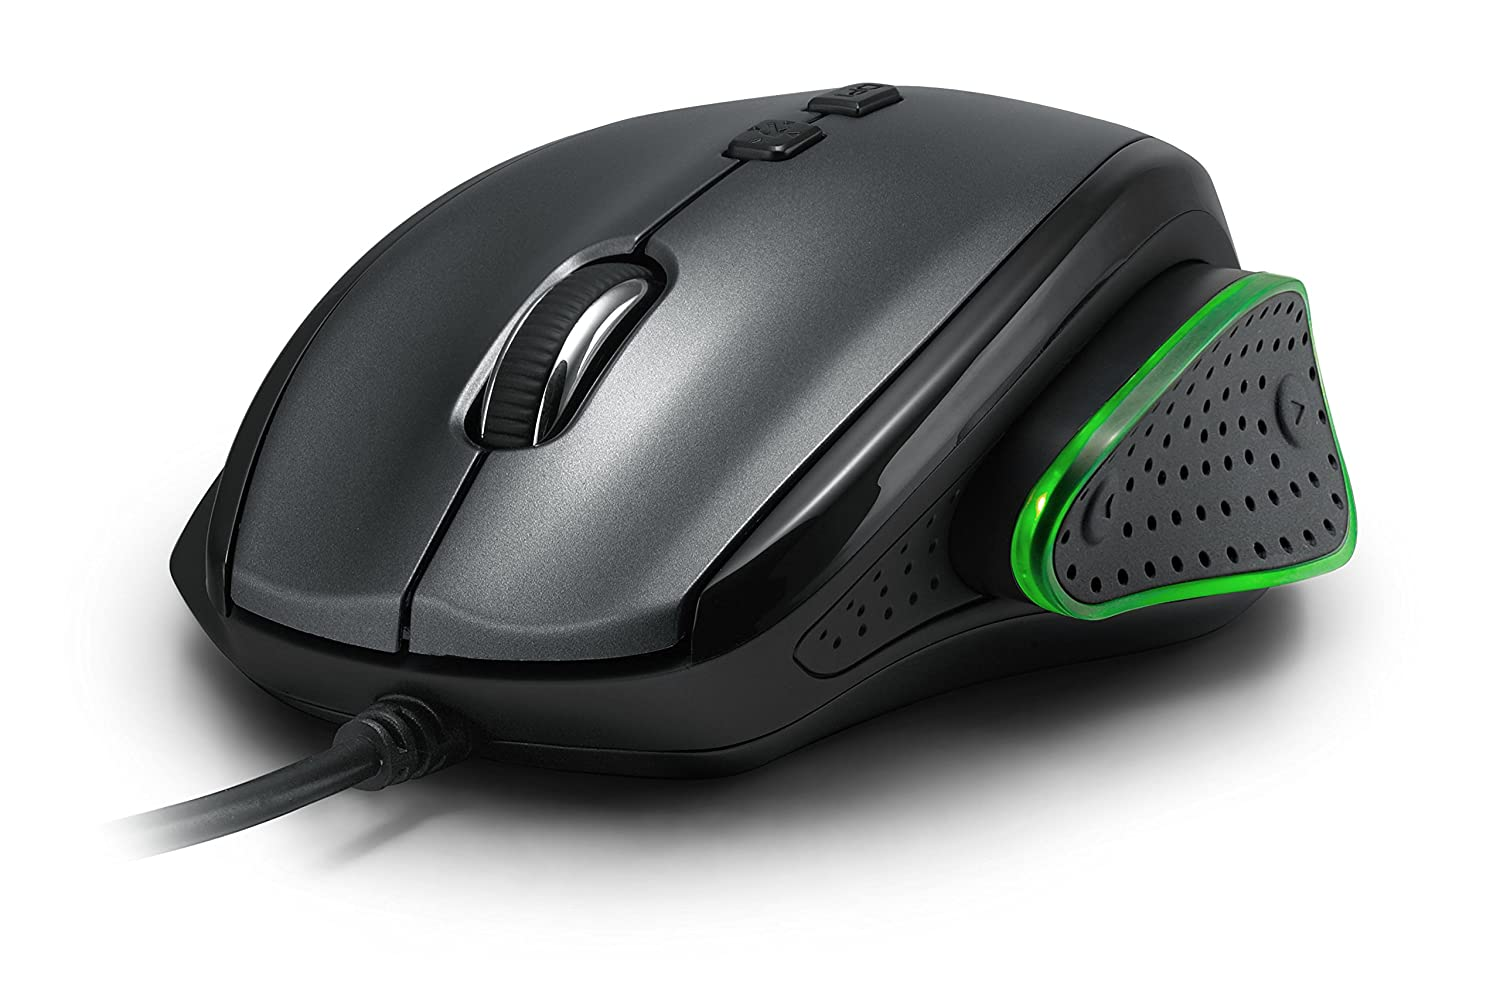 PUREX Technology 3000 DPI High Precision Wired Optical Gaming Mouse with adjustable Thumb-Rest – PXE-M535BU